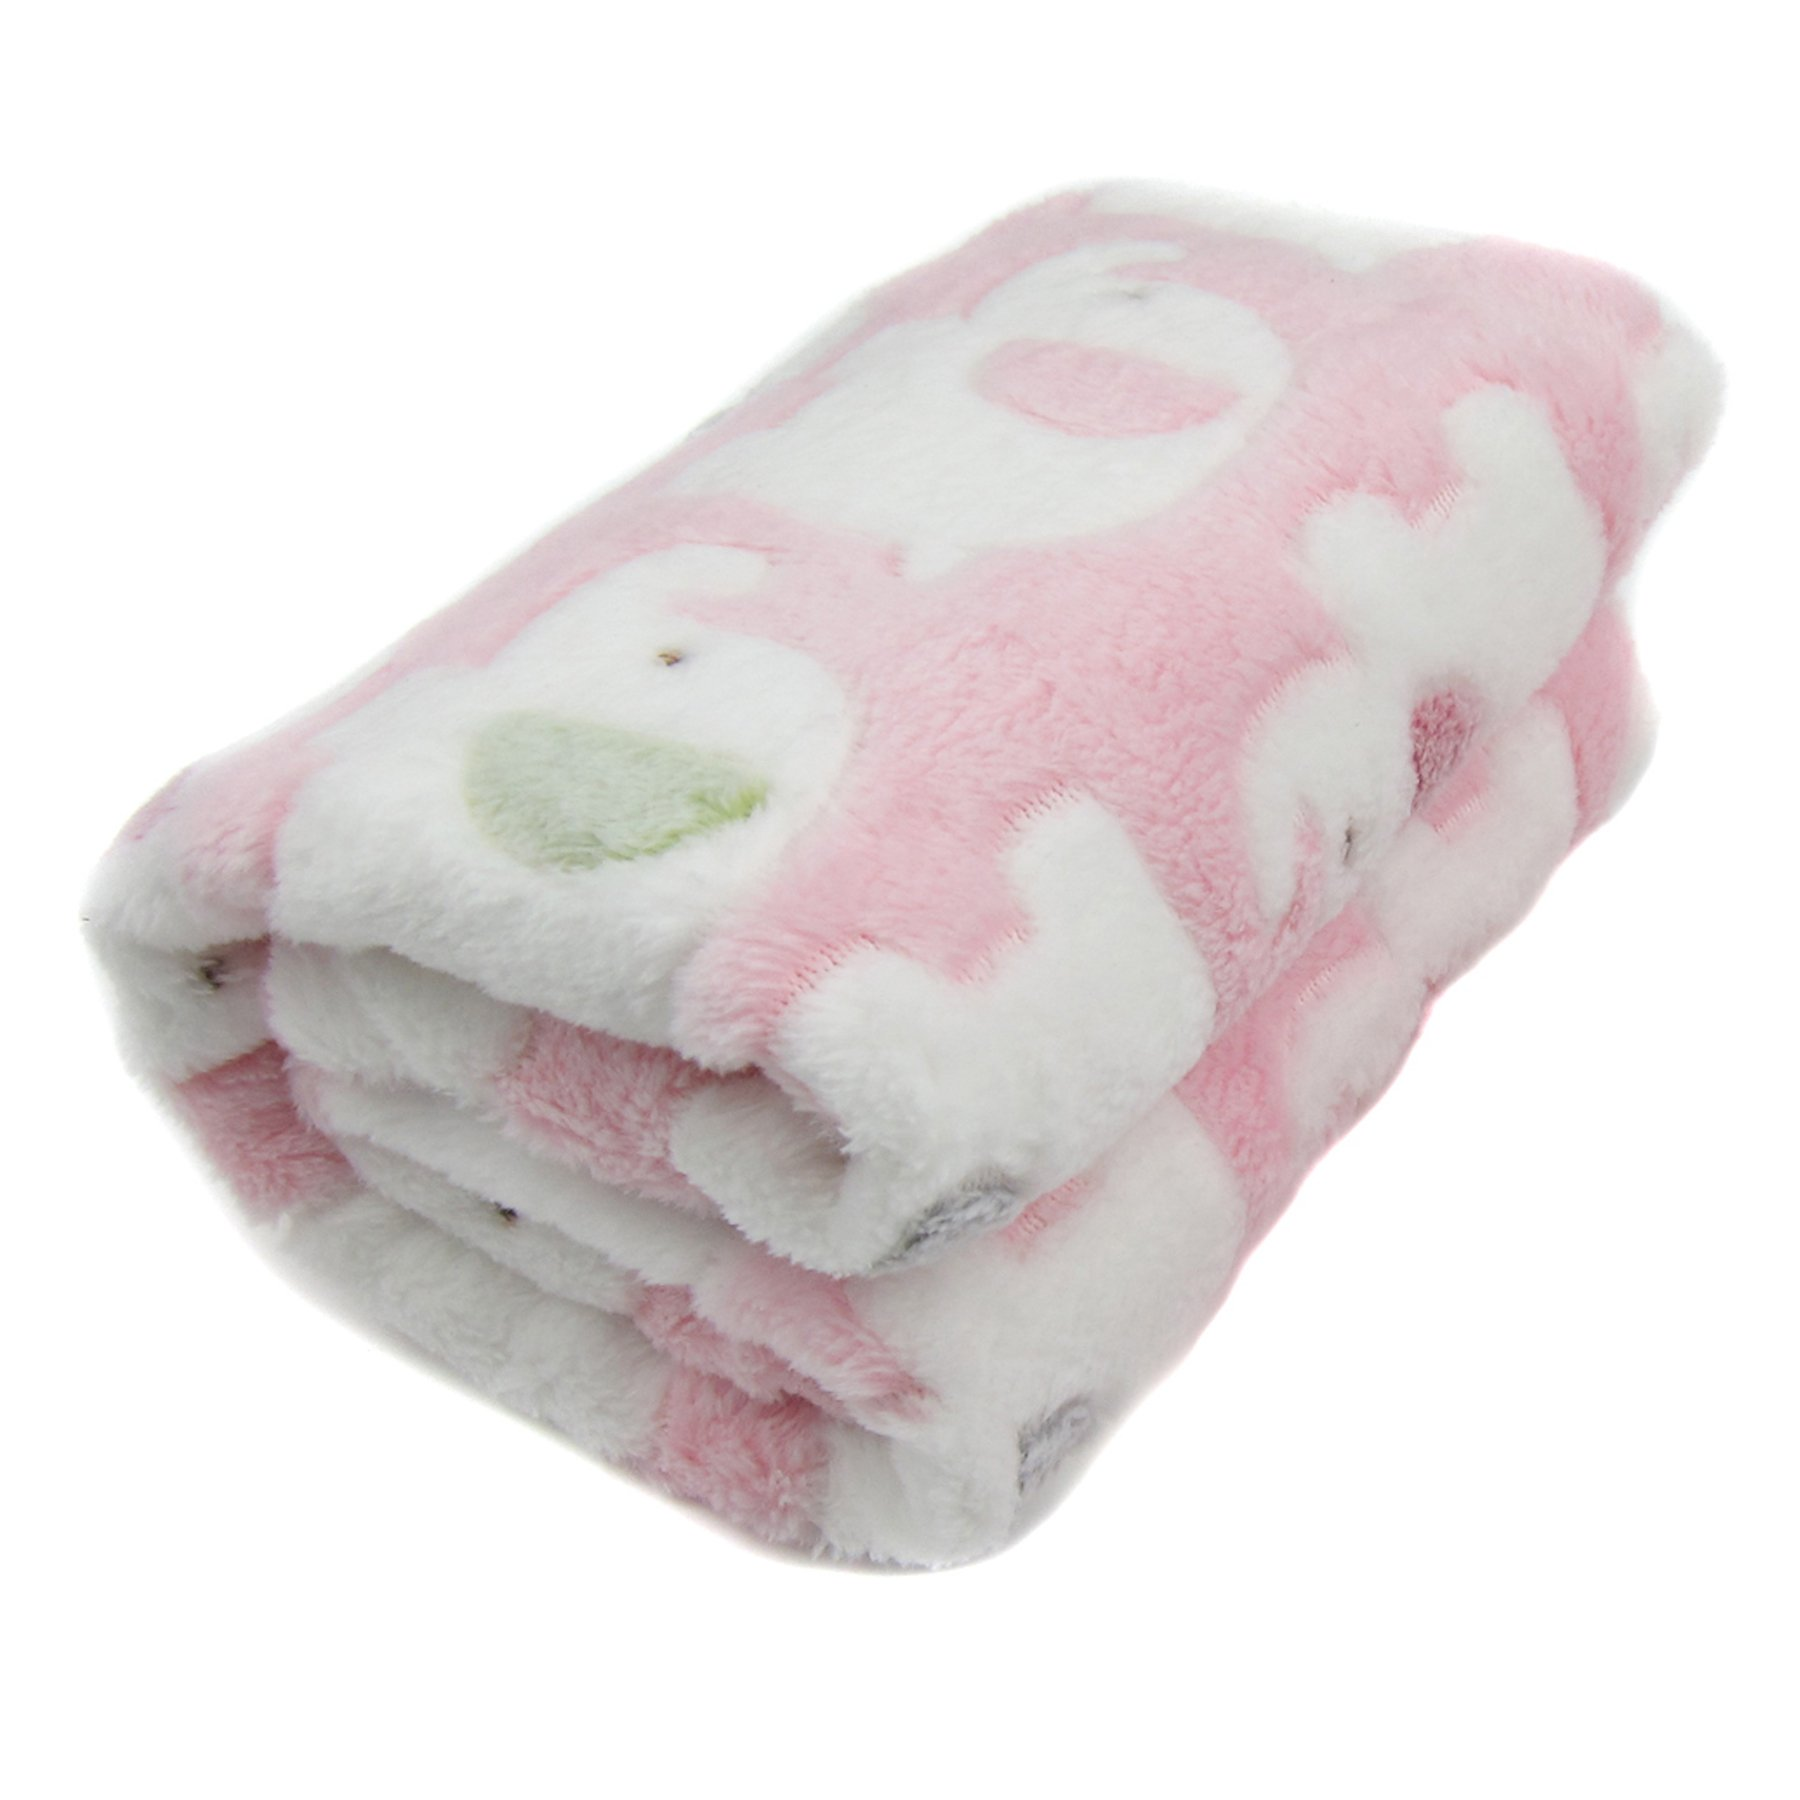 Alfie Pet by Petoga Couture - Abia Animal Blanket for Dogs and Cats - Color: Pink, Size: Large by Alfie (Image #6)